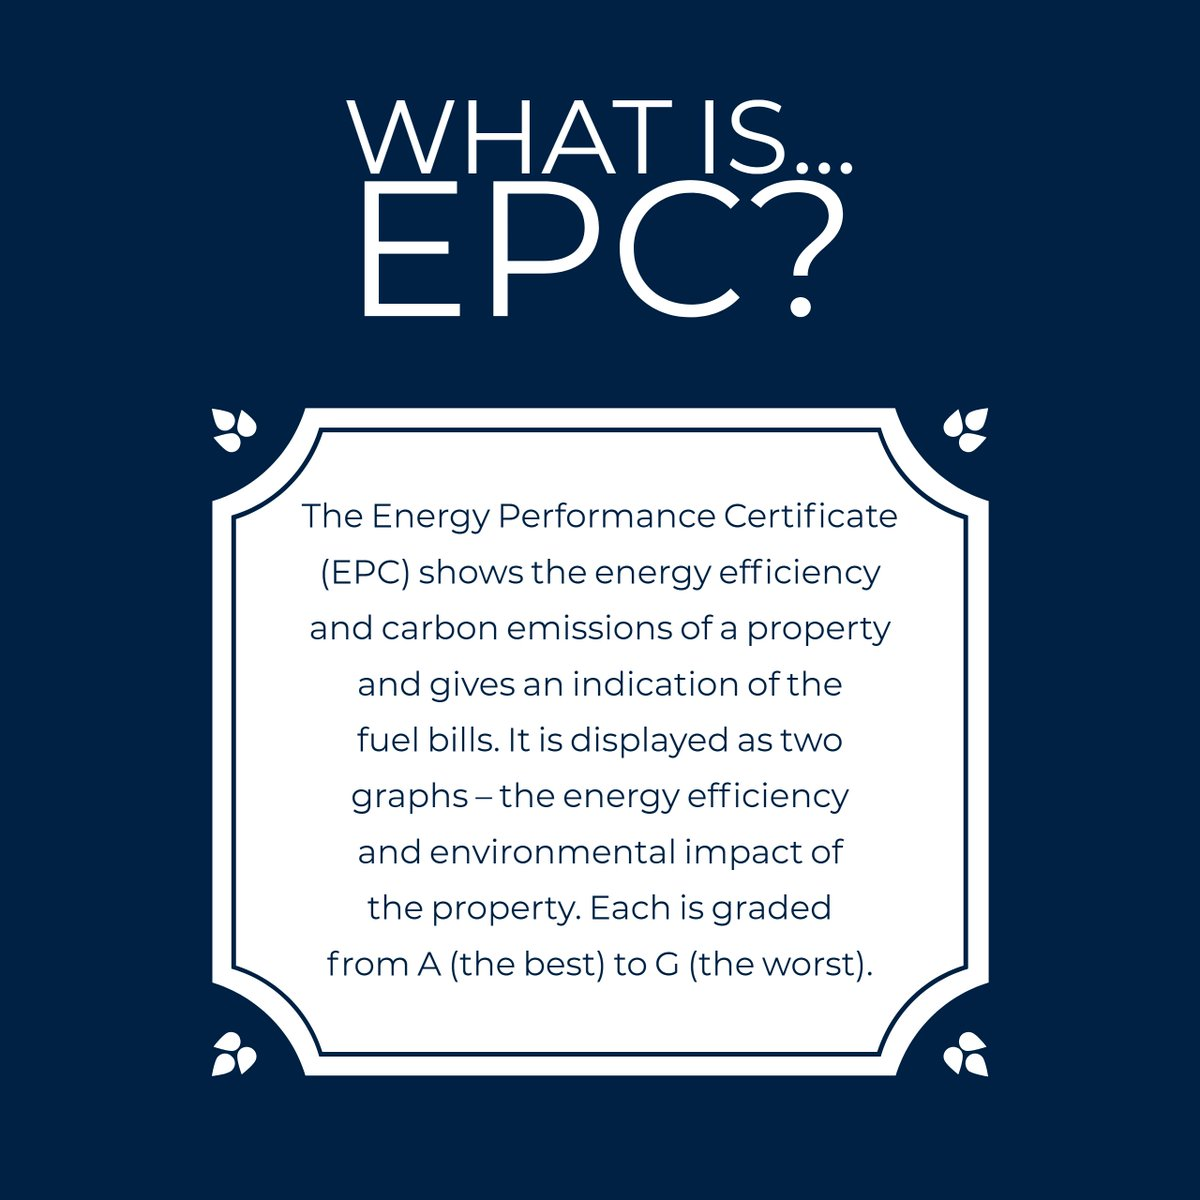 What Is Epc >> Sinclairestateagents On Twitter What Is Epc In The